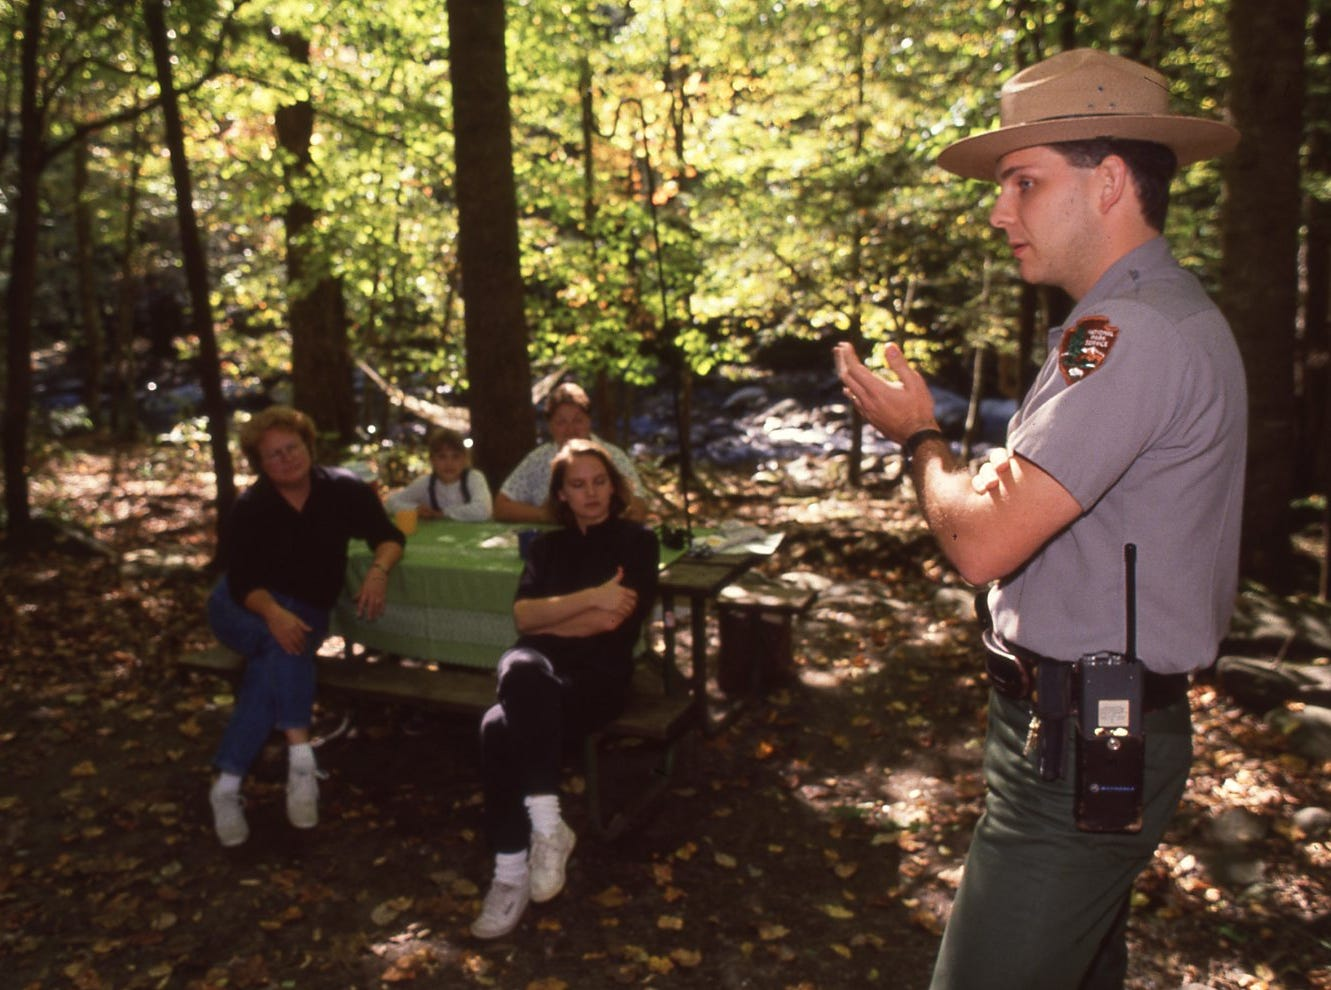 Park ranger J.D. Lee pleads with members of the Edwards family their campsite in the Elkmont campground, October, 1990.